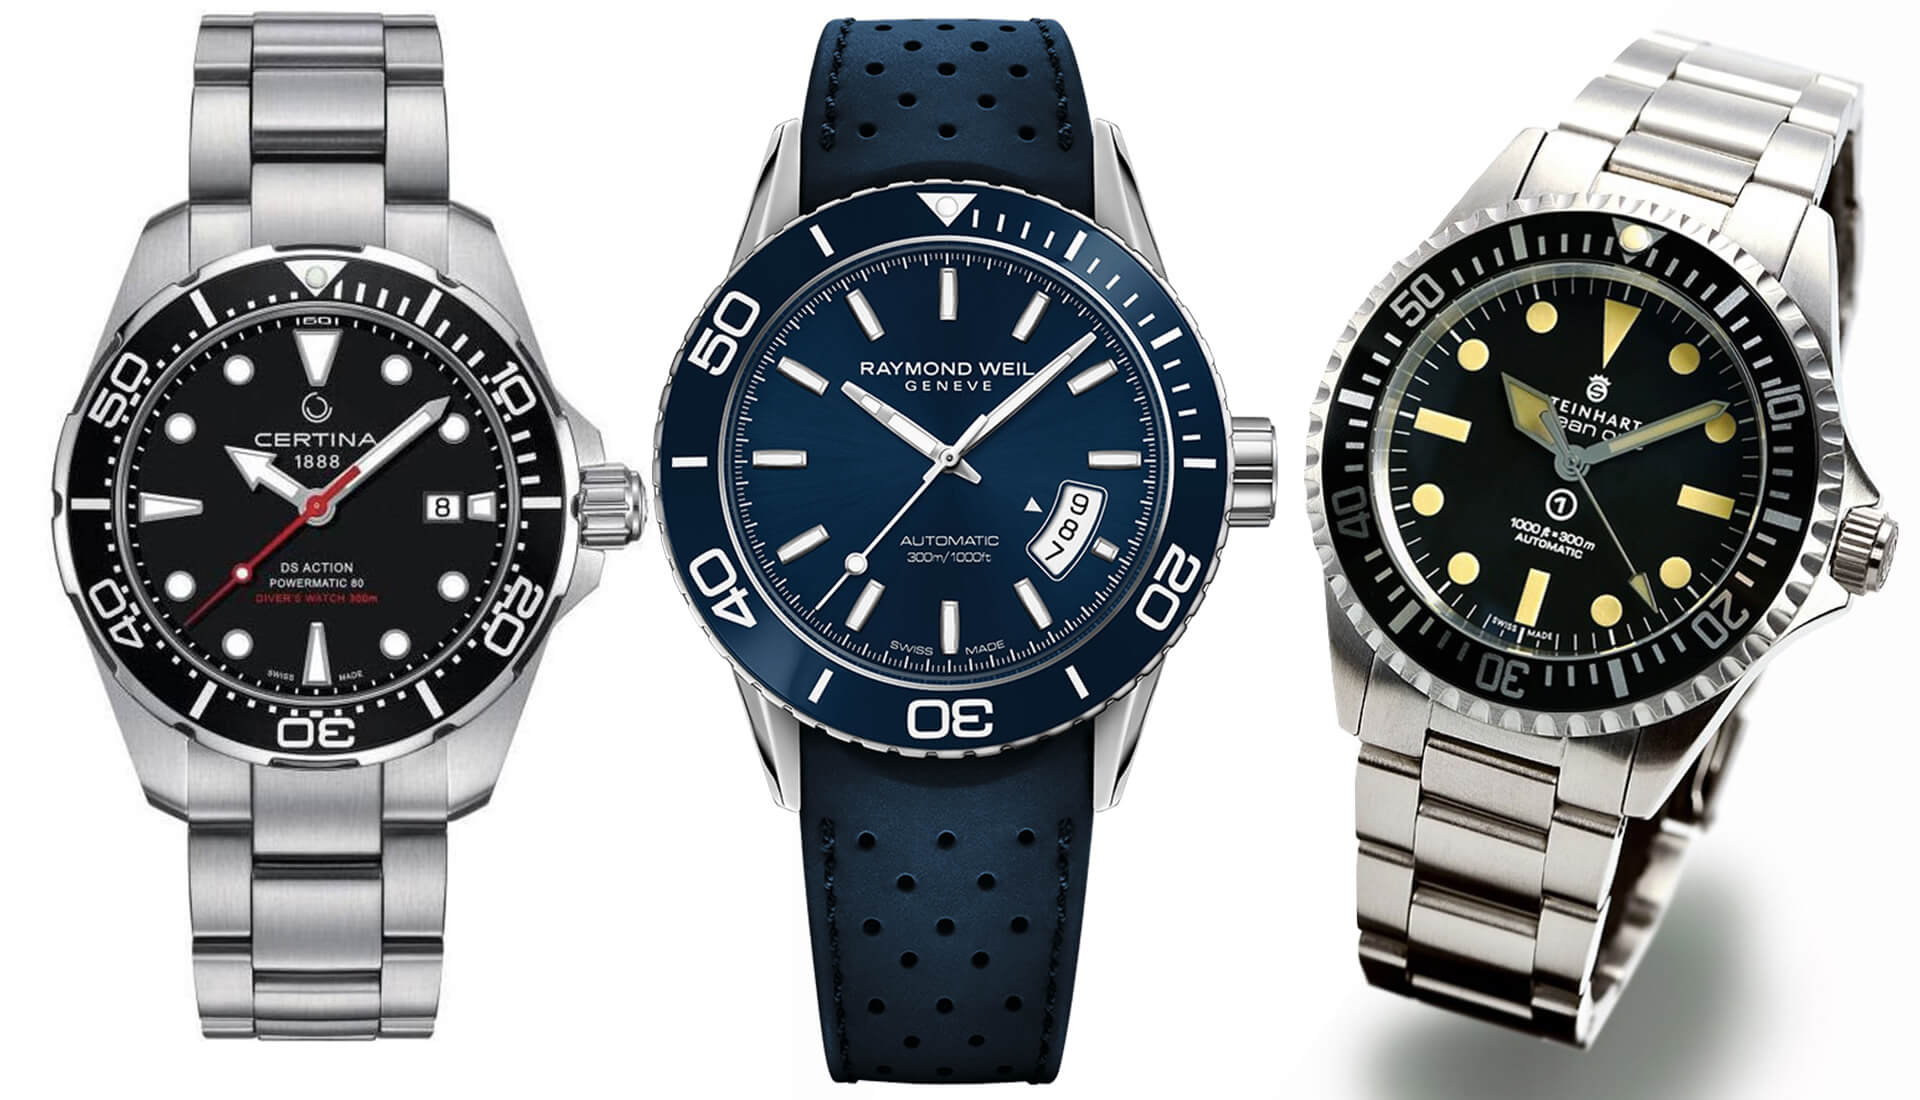 Watch 101: What Are Affordable Alternatives to the Rolex Submariner?